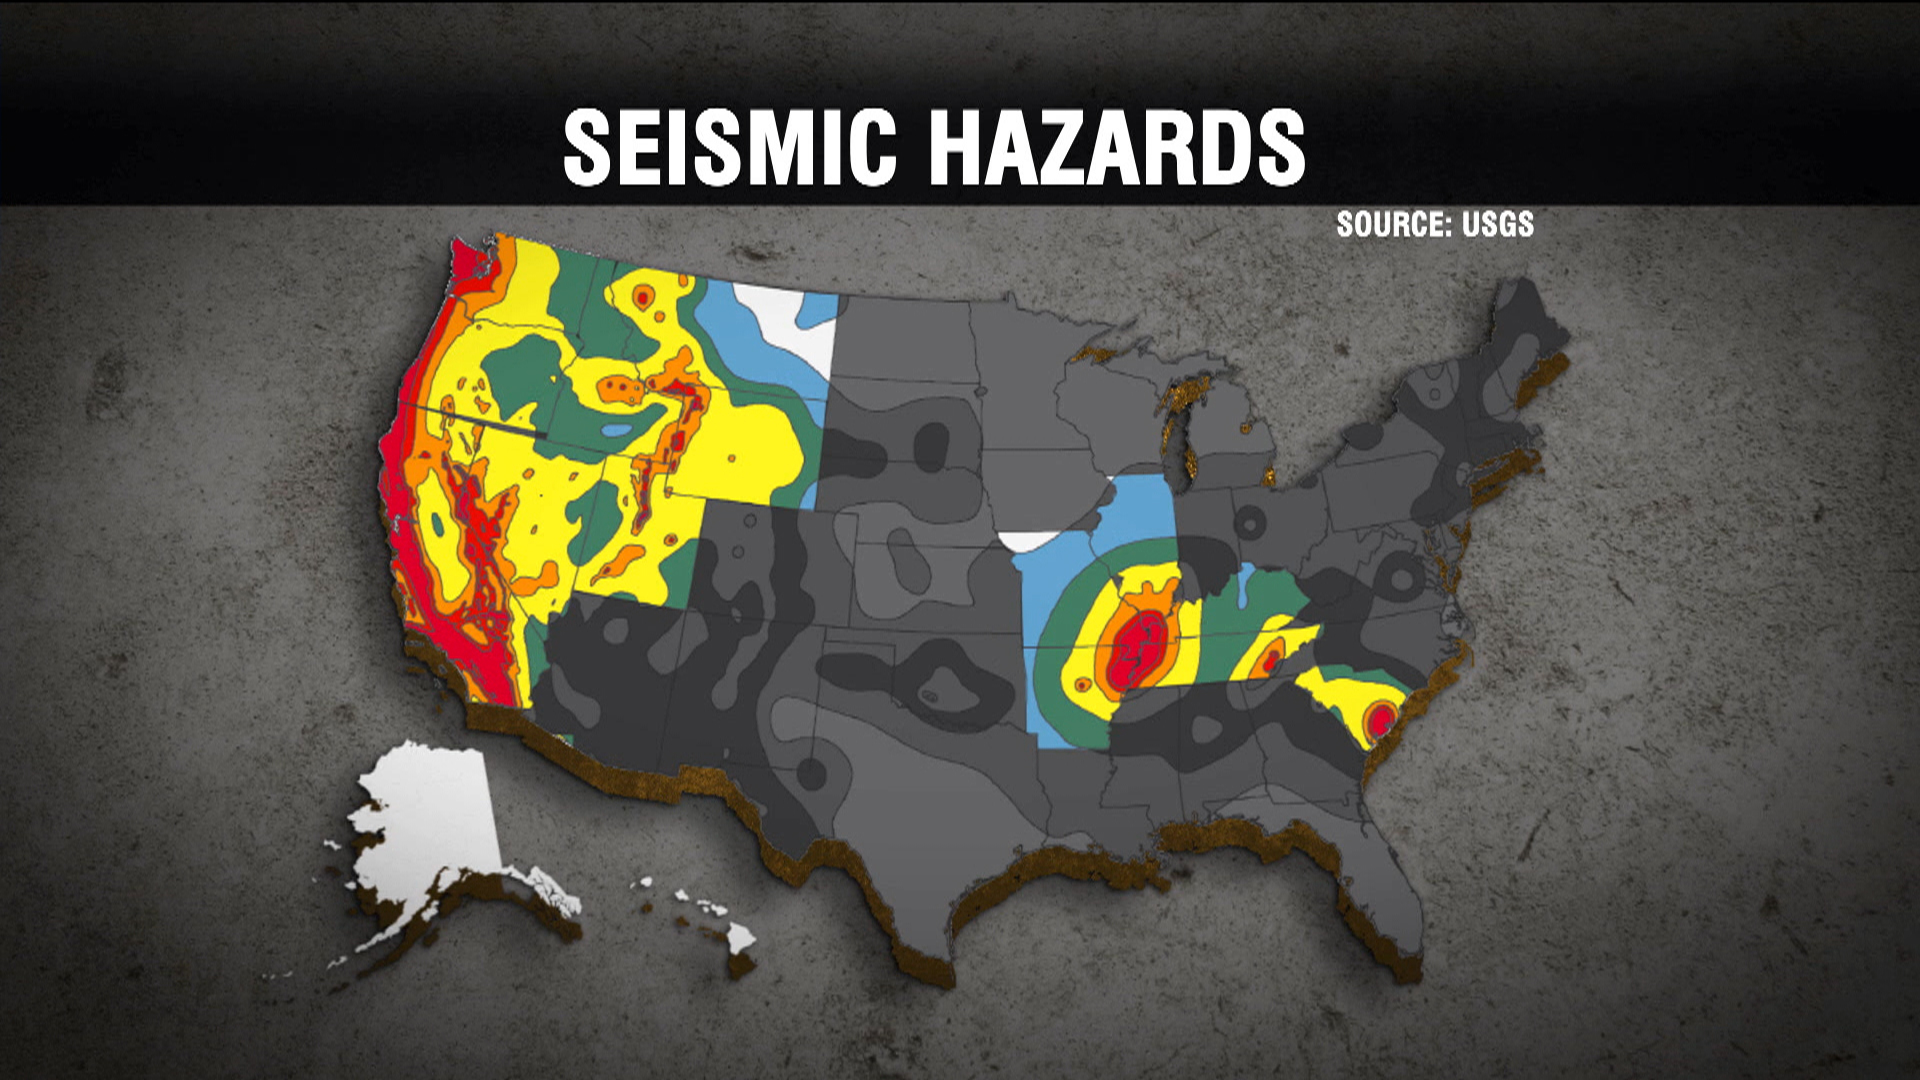 Earthquake Risks Higher Than Once Believed For